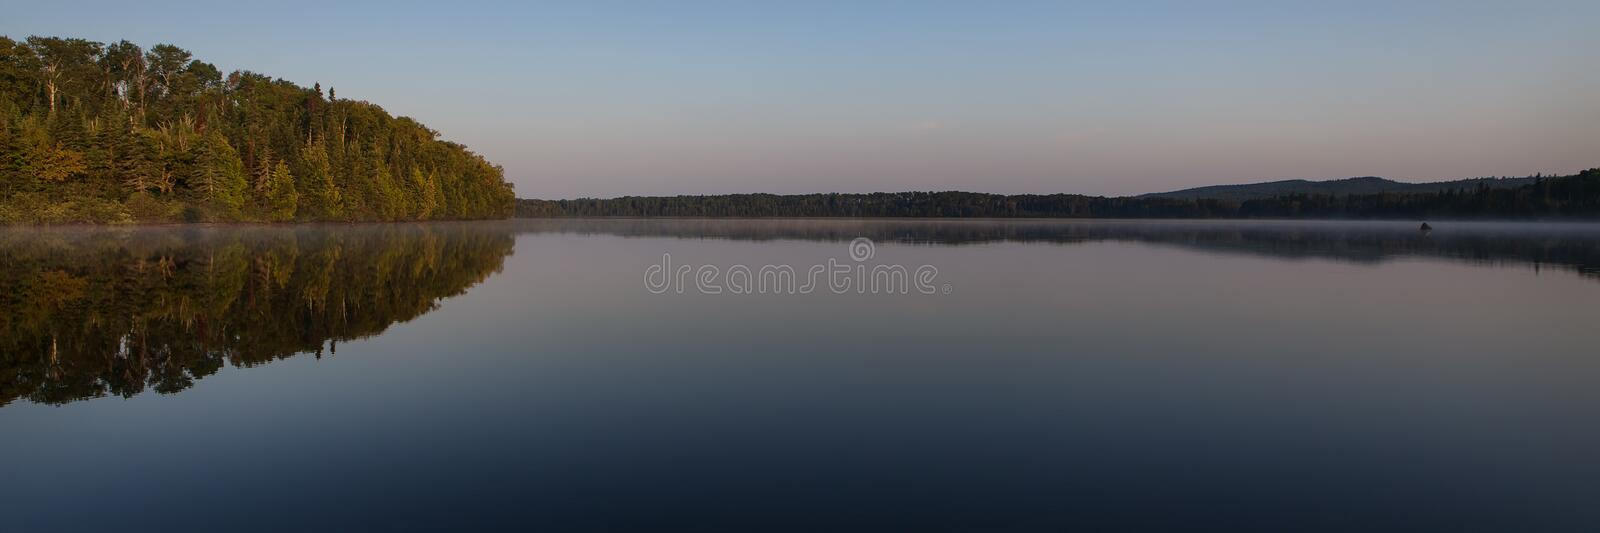 Lago elbow fotografia de stock royalty free